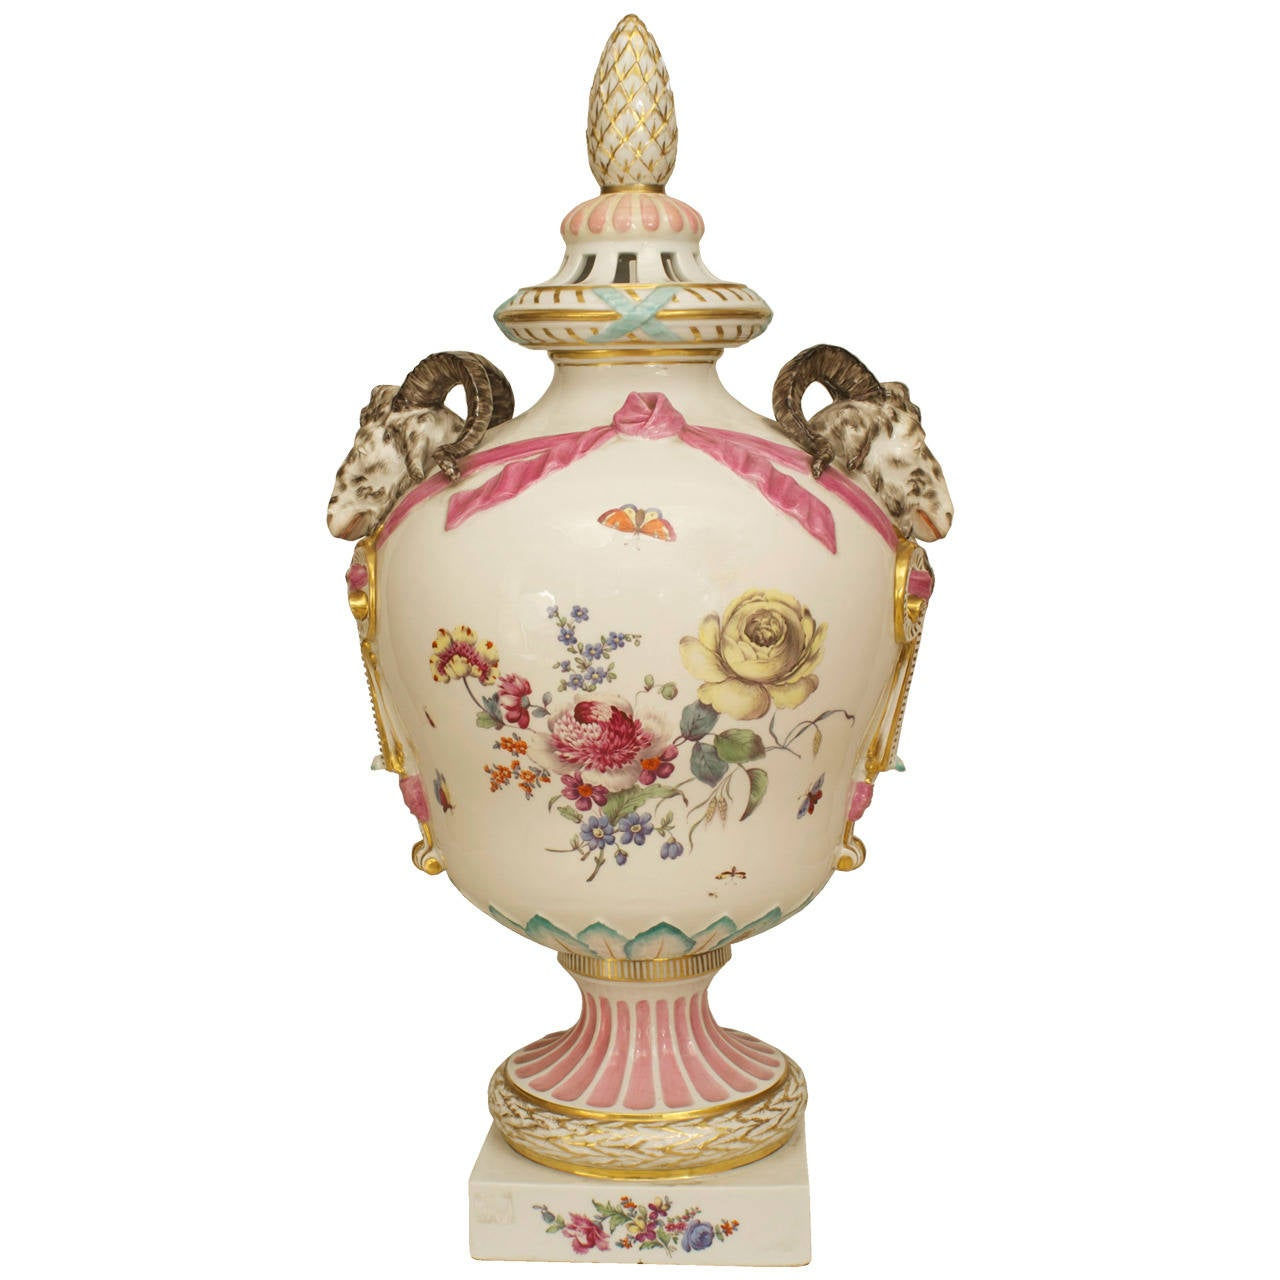 A Fine 18th Century Continental German Porcelain Decorated Urn